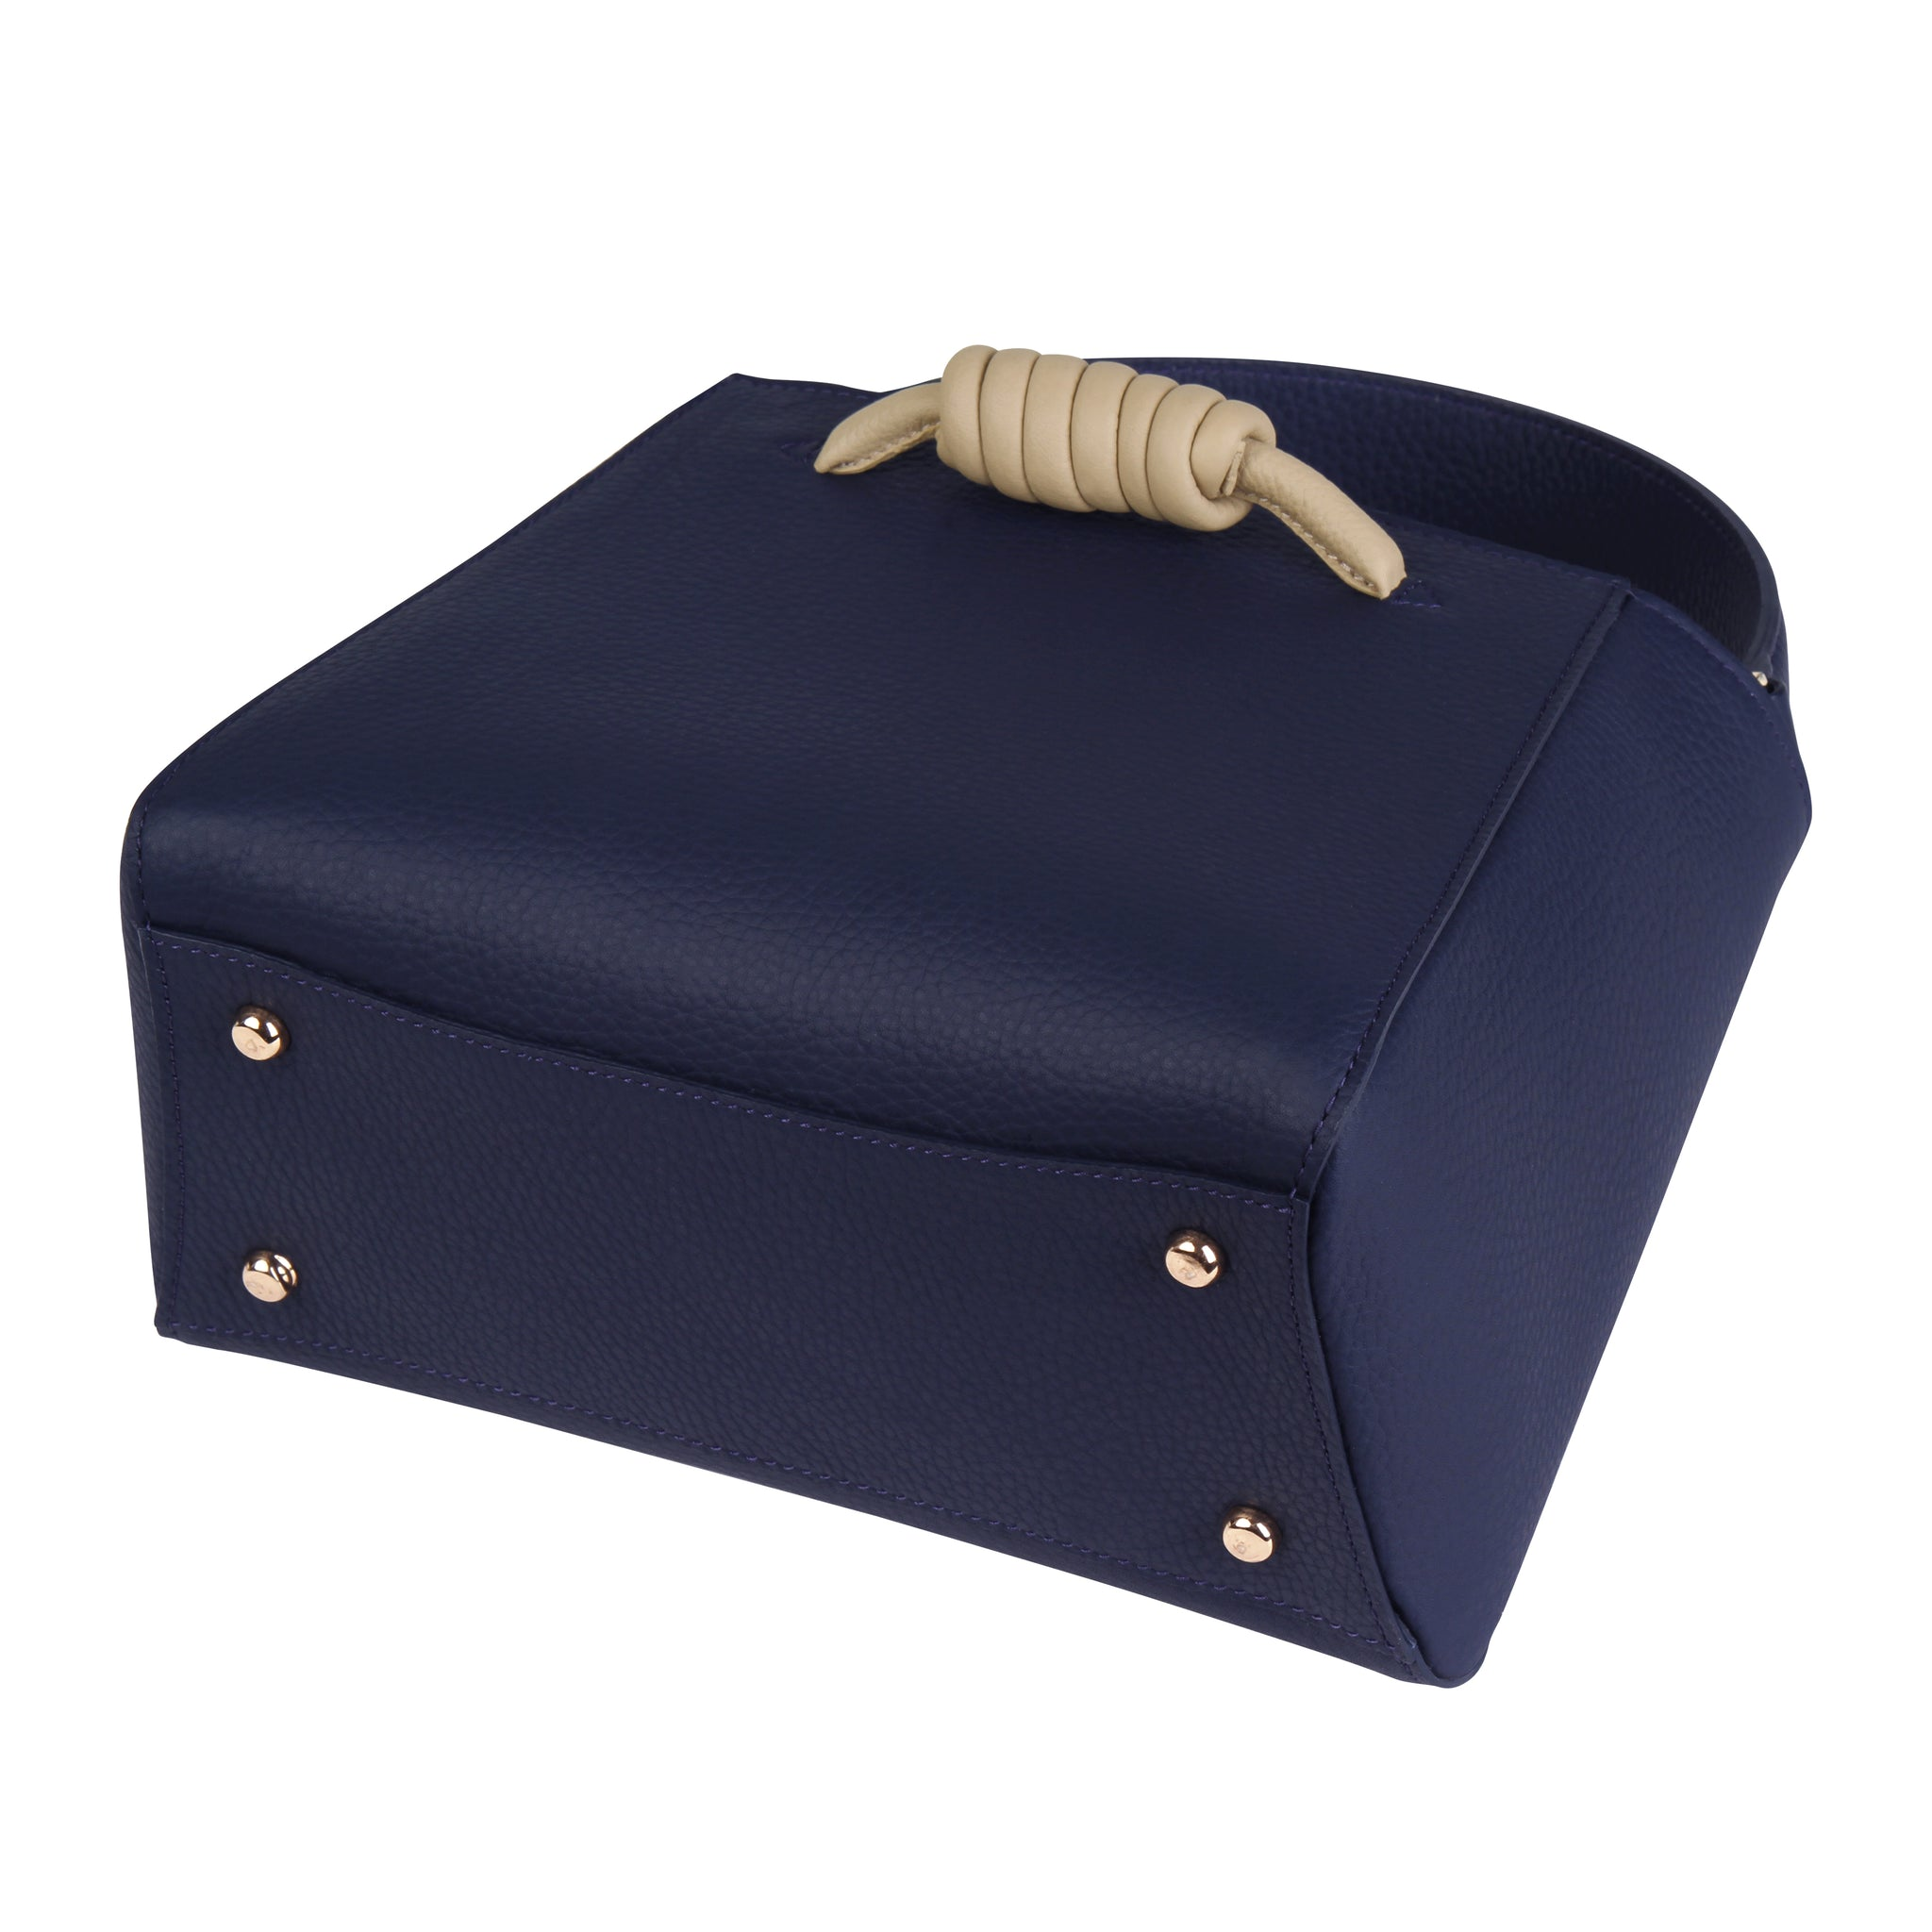 A medium size navy convertible leather top handle tote bag with a knot detail in front that could be used as a handheld mini tote bag, base image.